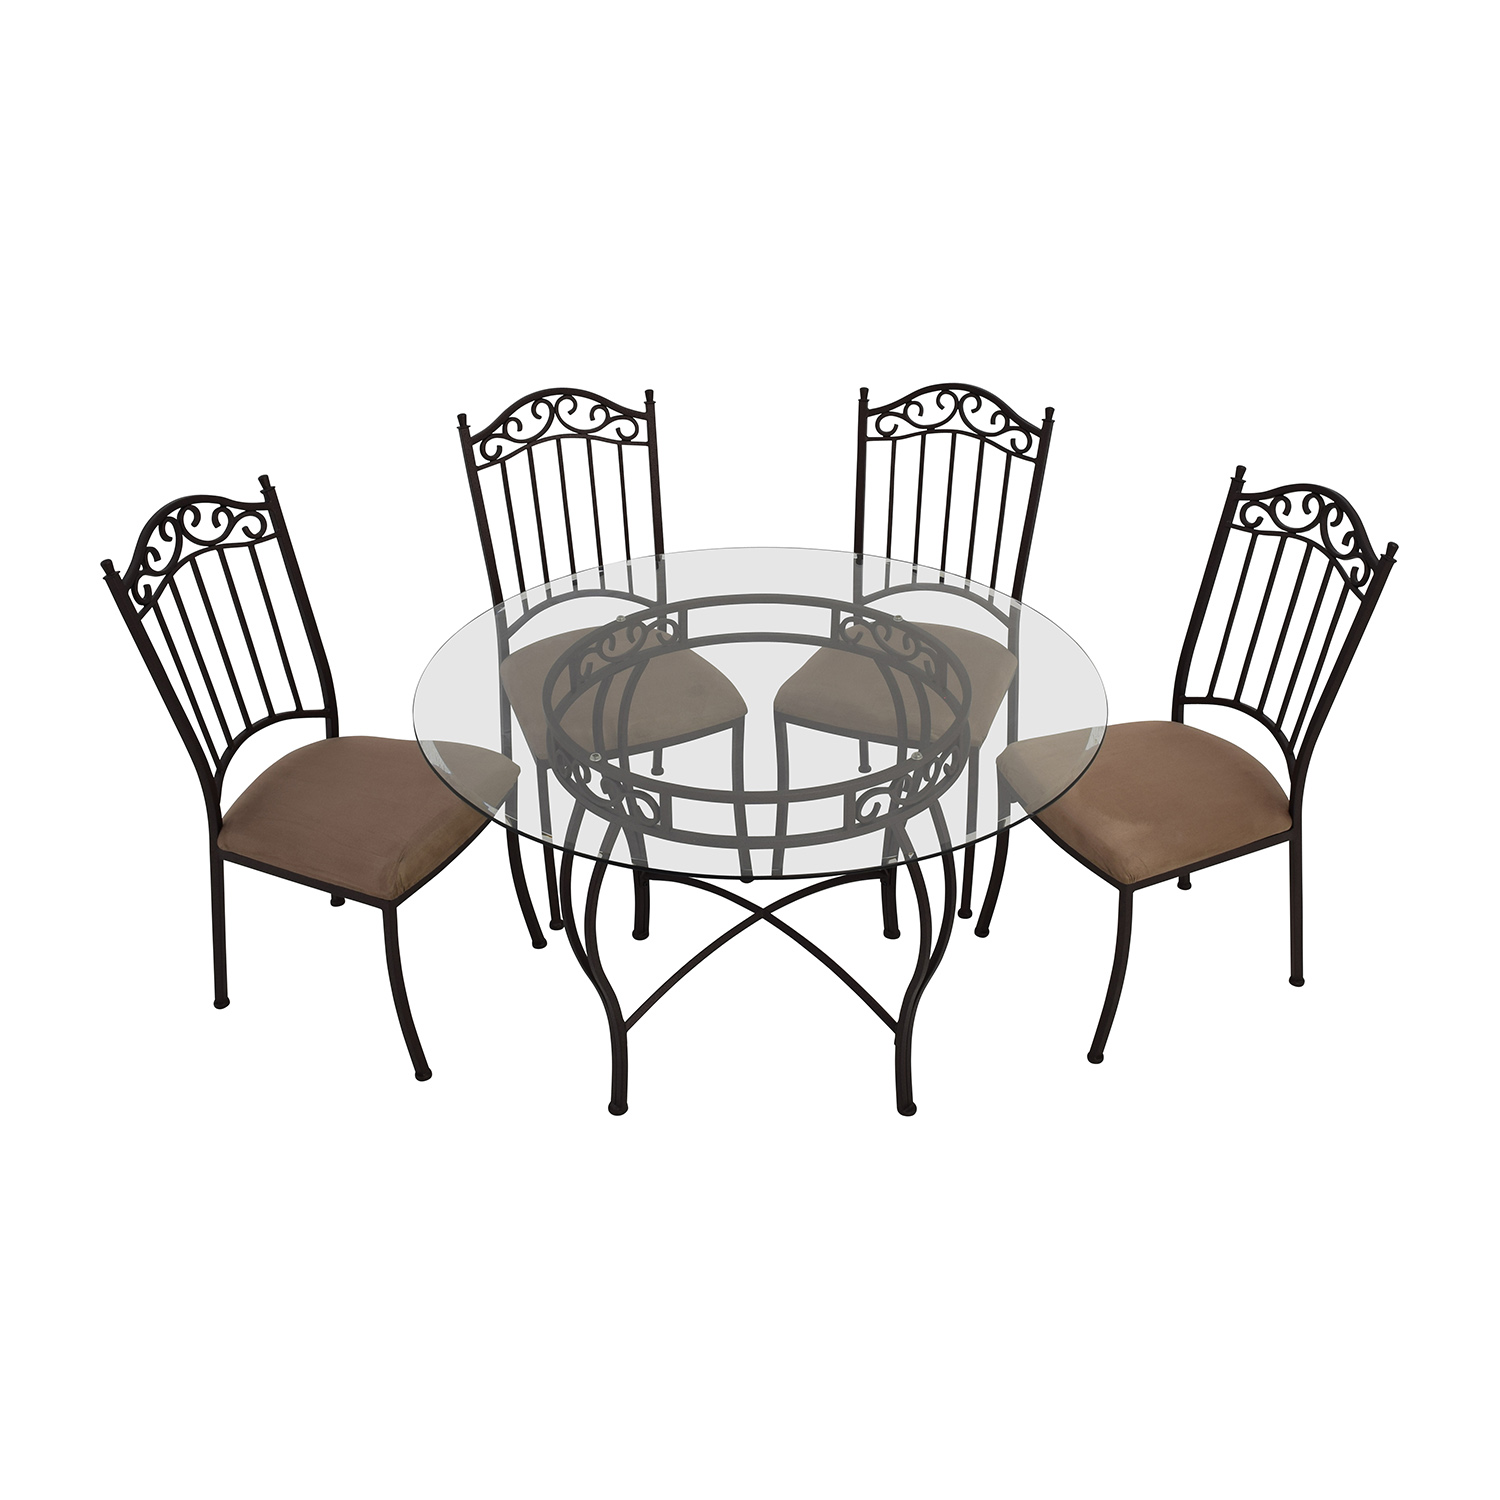 72% OFF Wrought Iron Round Glass Table and Chairs Tables